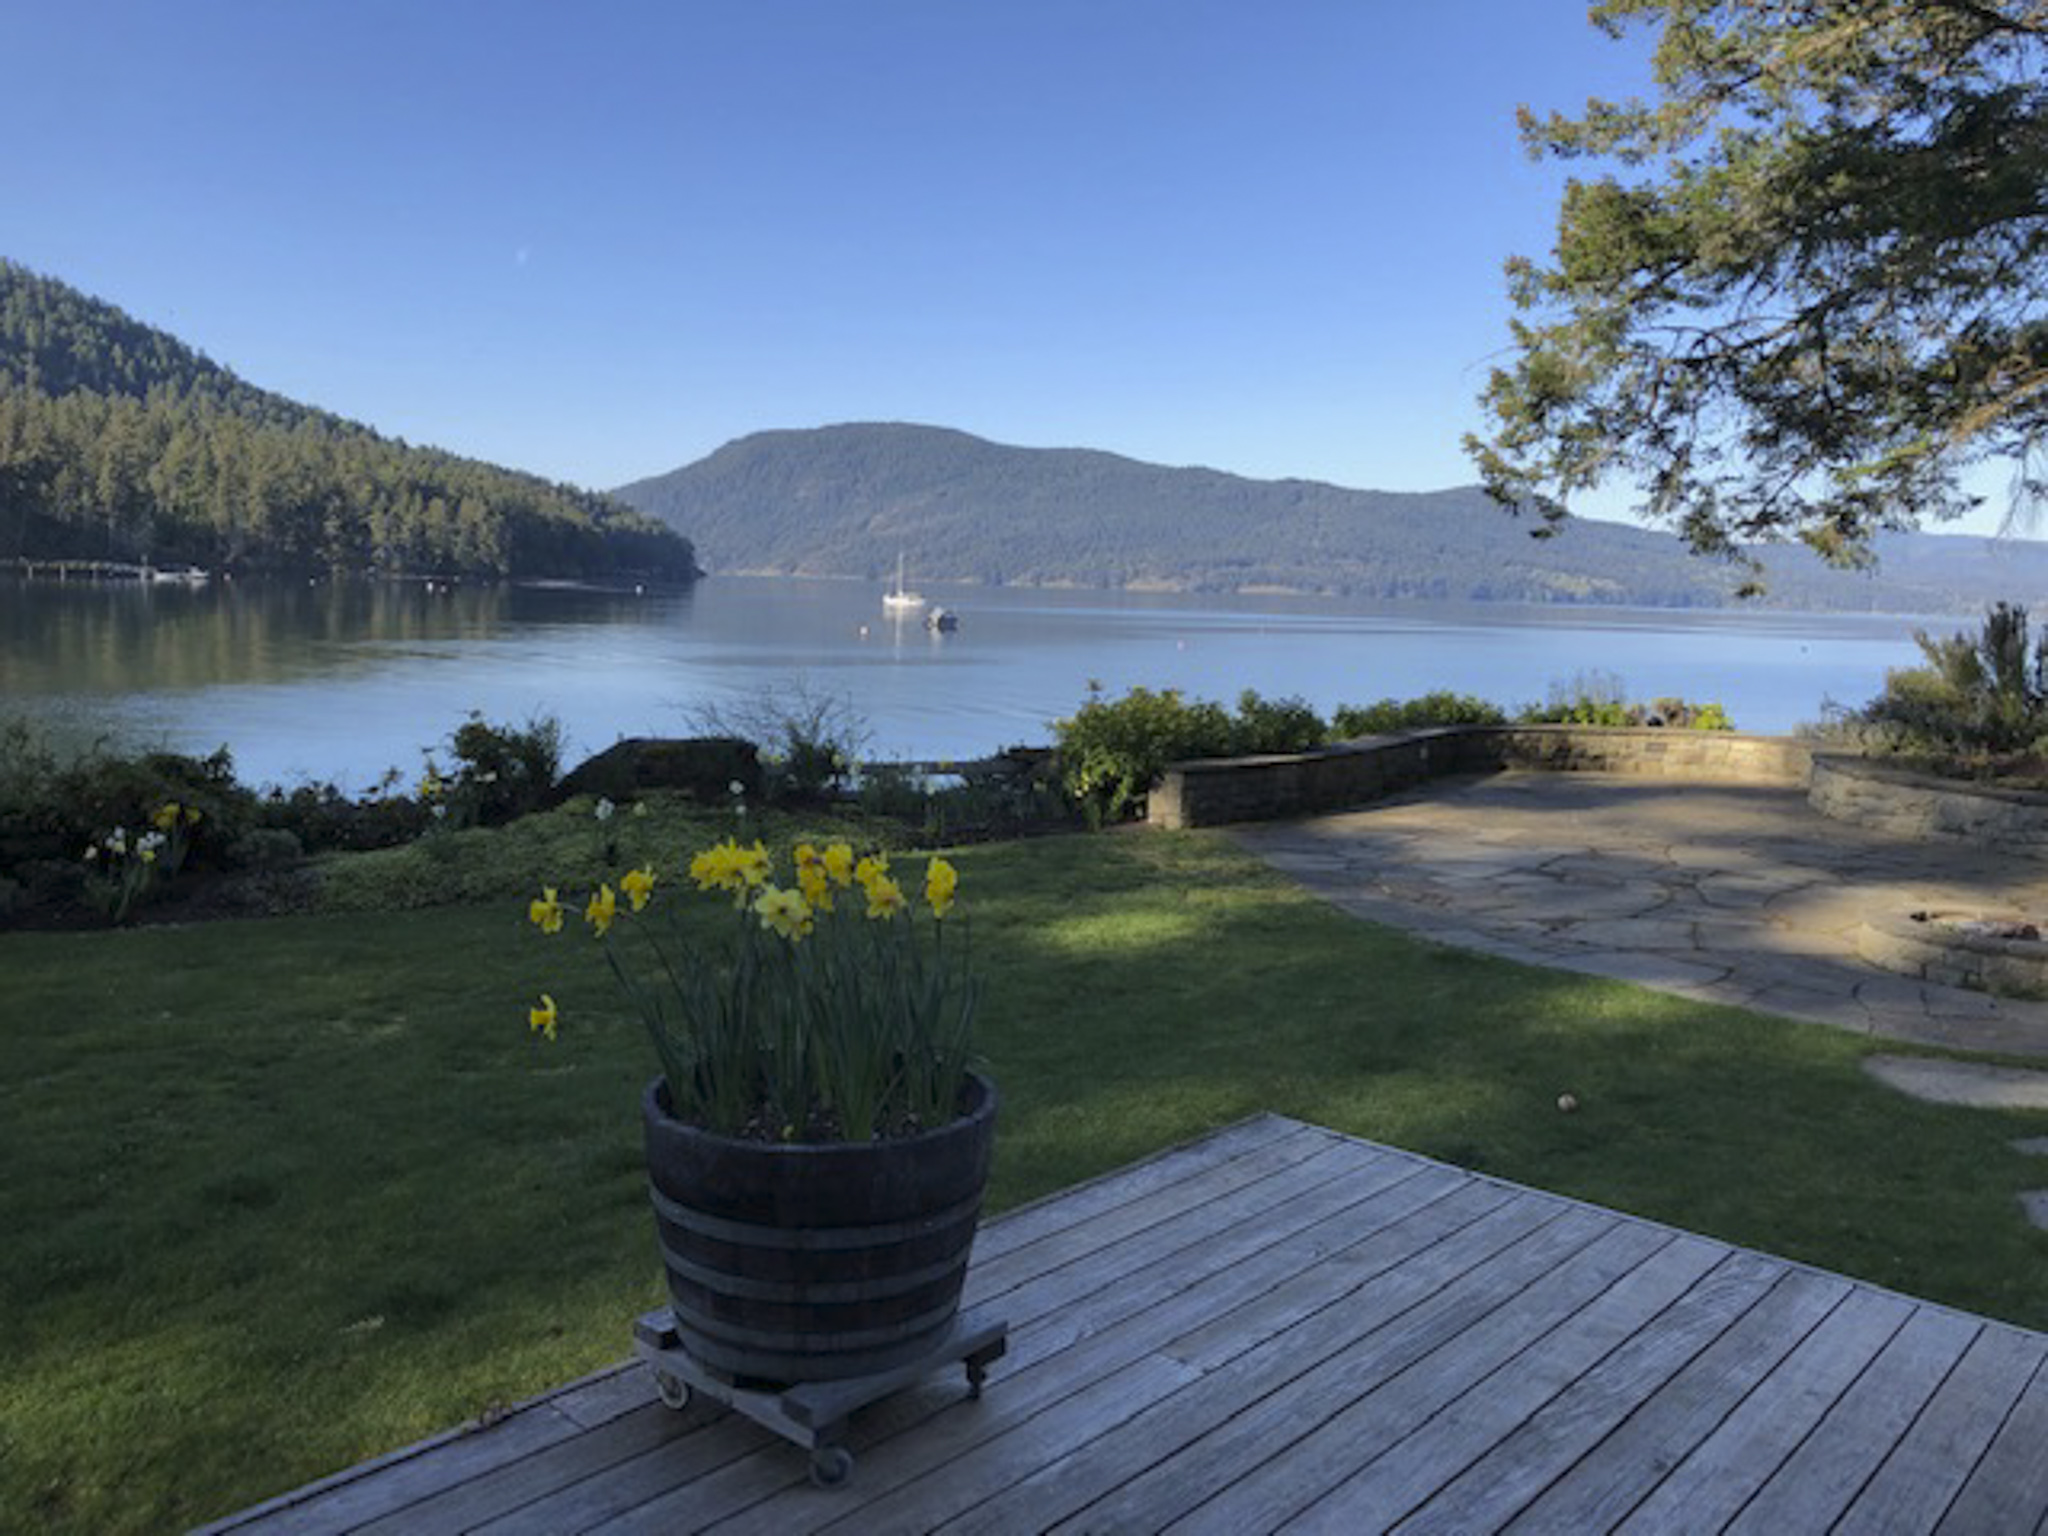 View From The Deck - Larry Citra